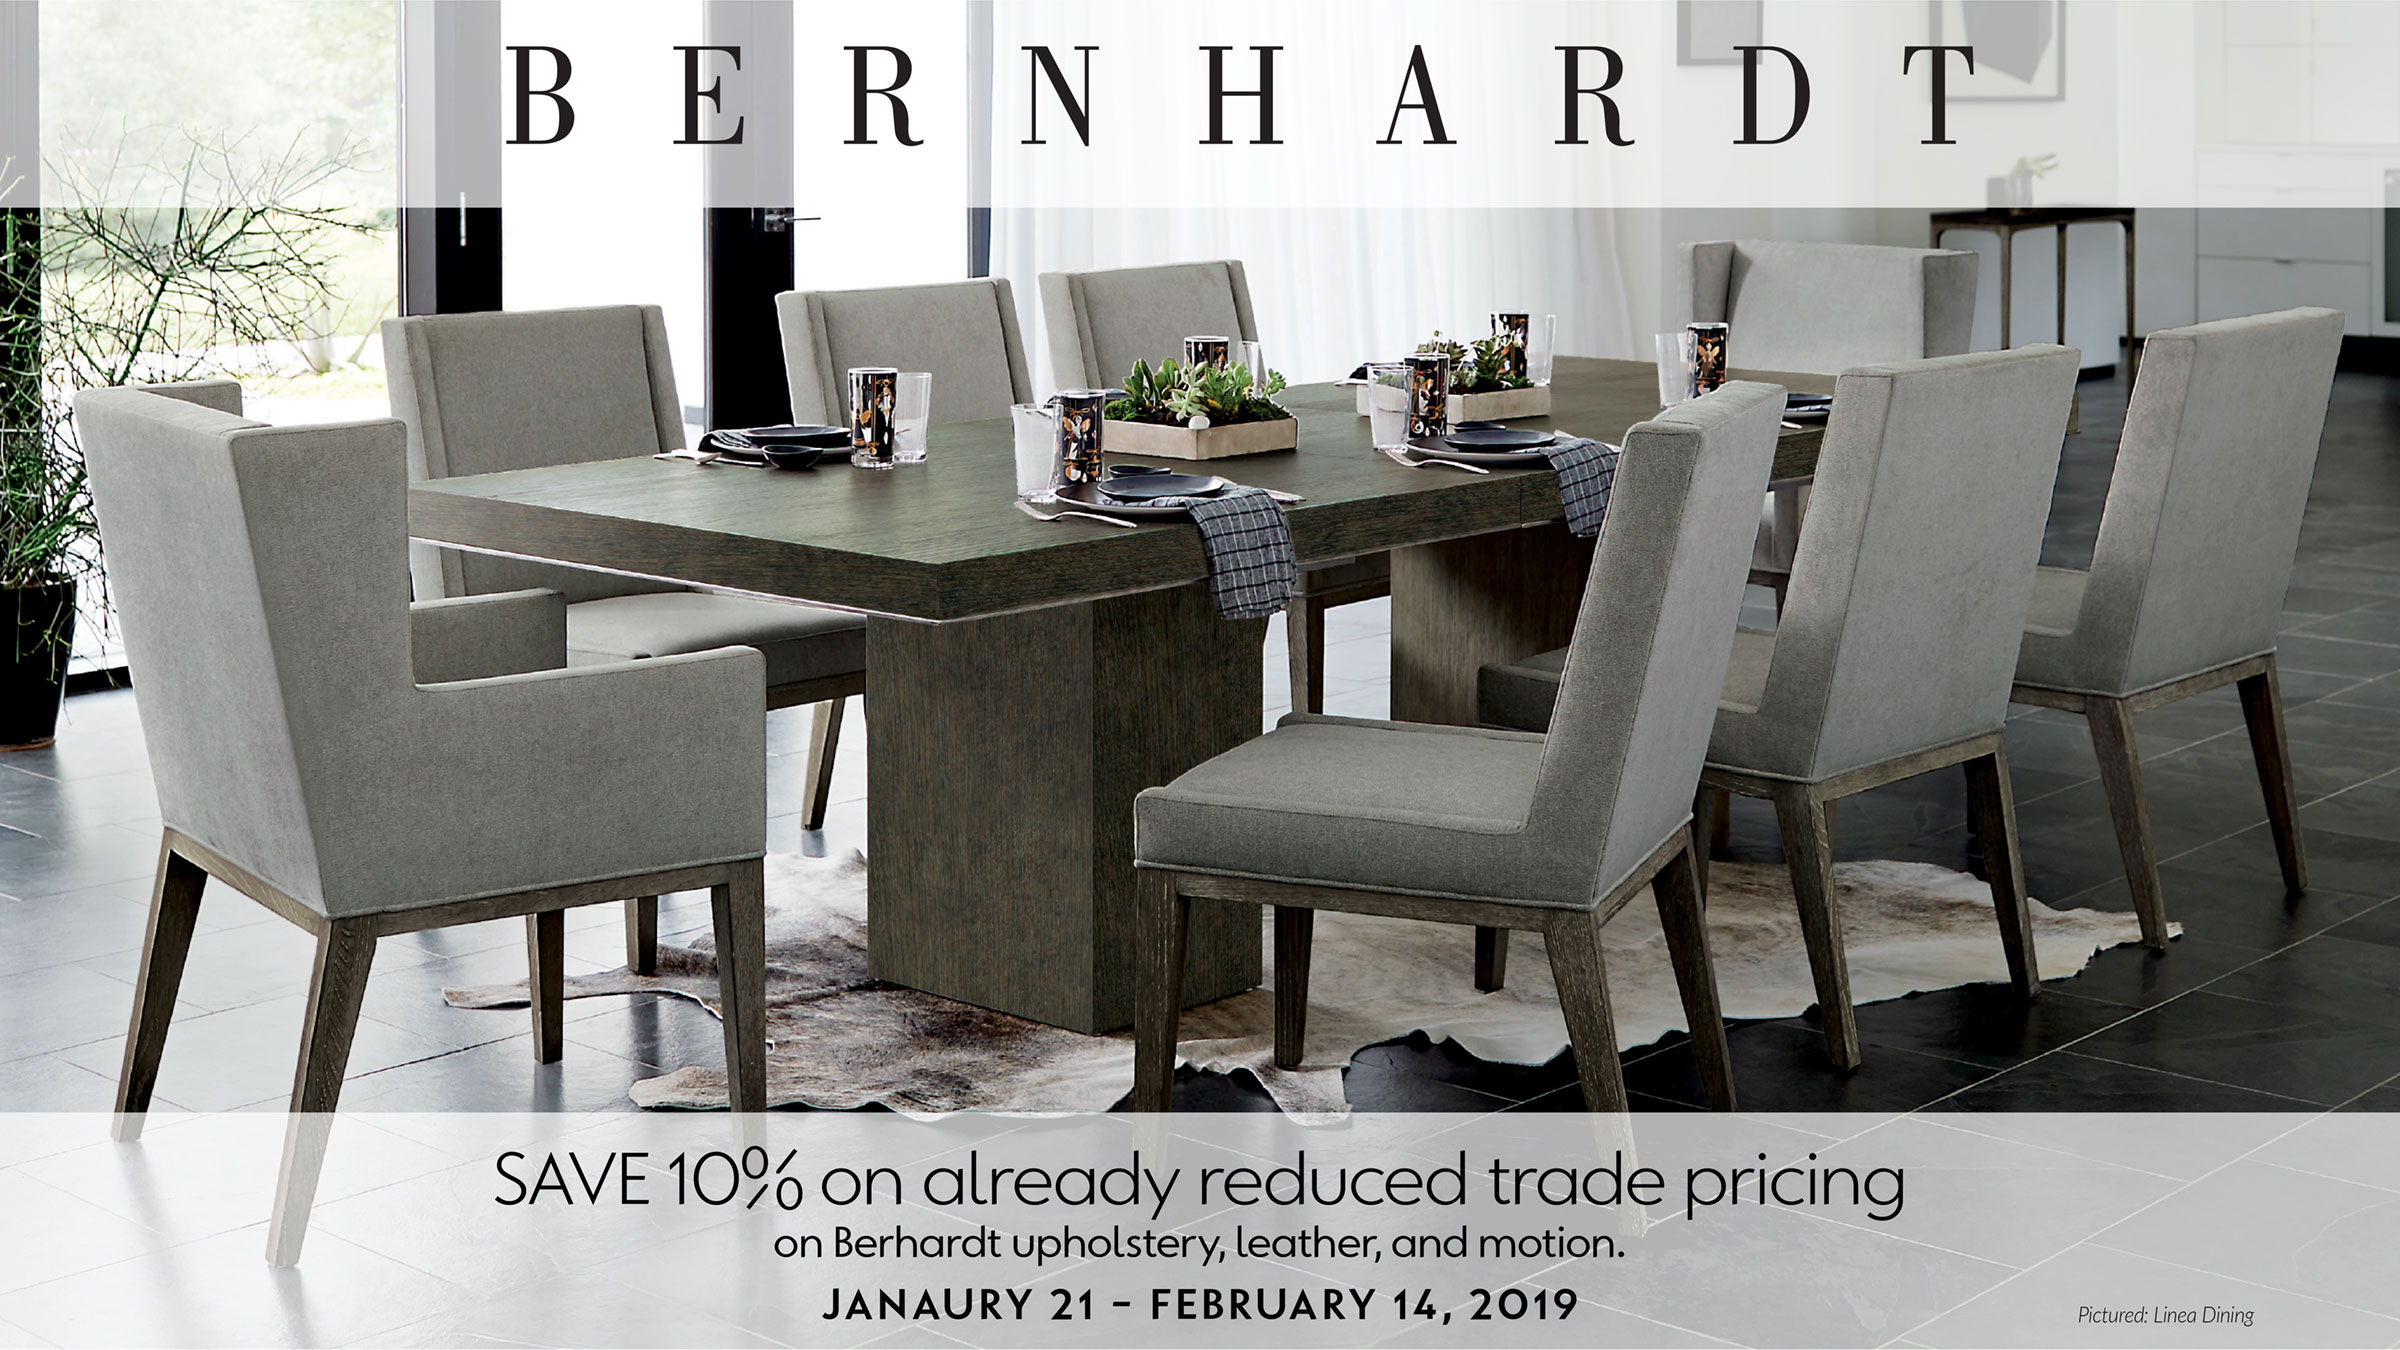 Bernhardt Sale at IDS: January 21 - February 14, 2019